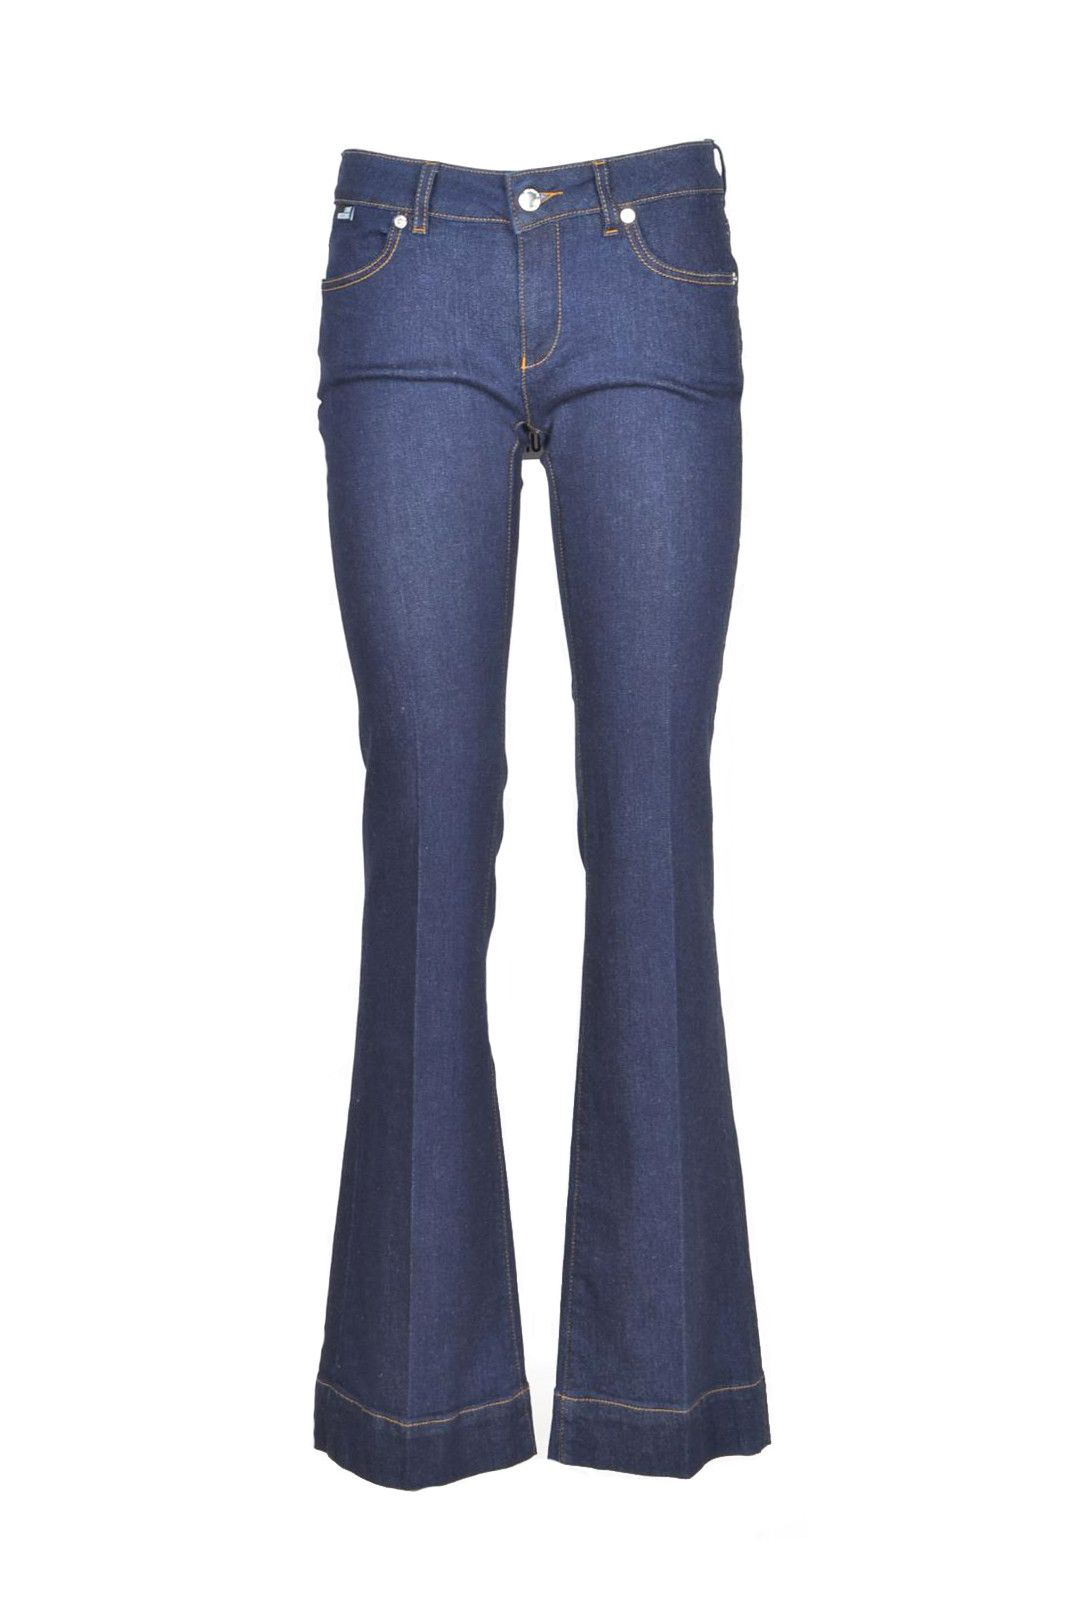 Love Moschino Women's Jeans In Blue